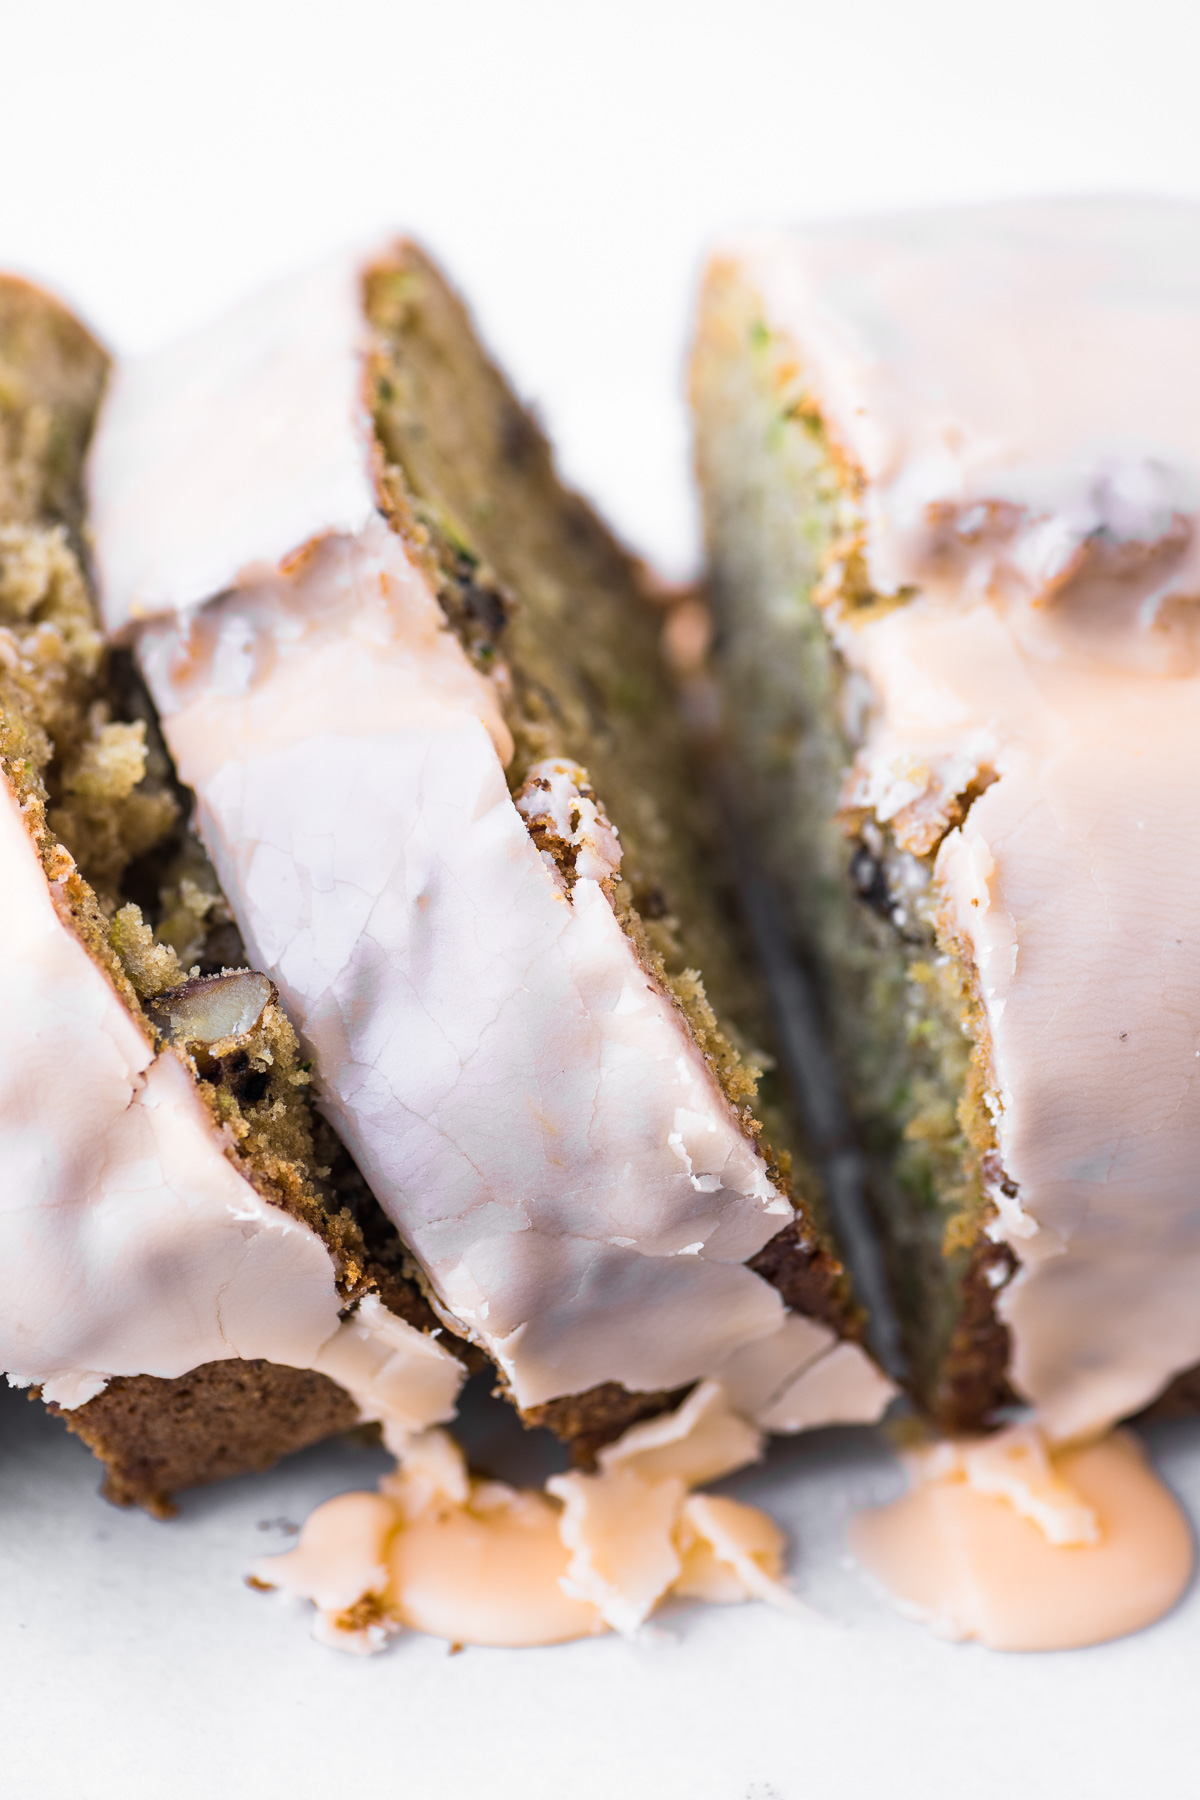 orange glazed zucchini bread, sliced and up close